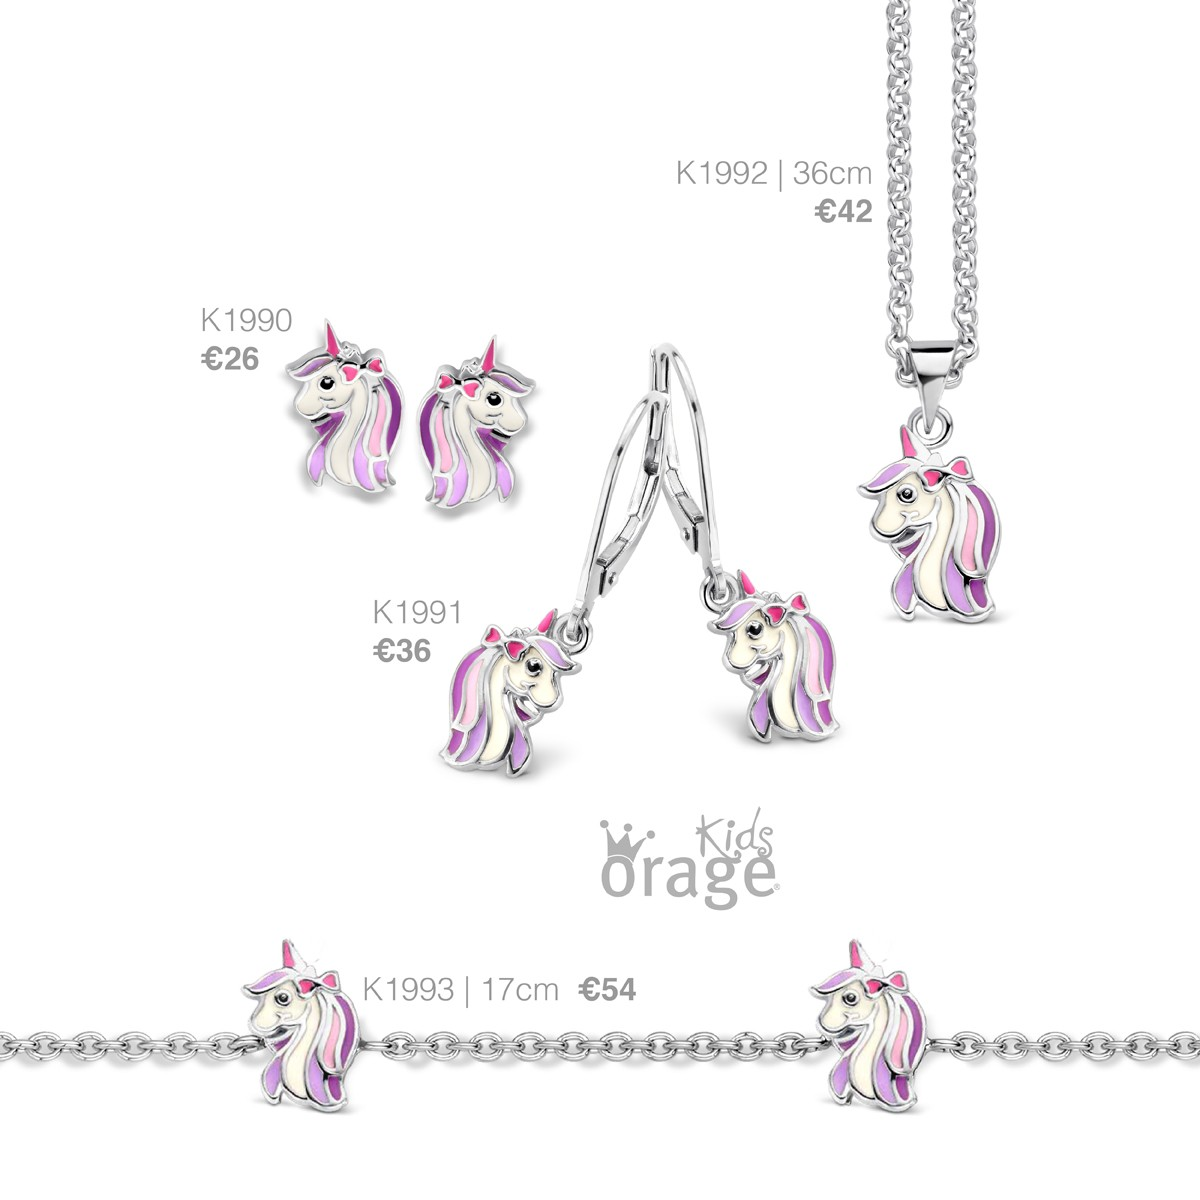 Orage Kids Unicorns